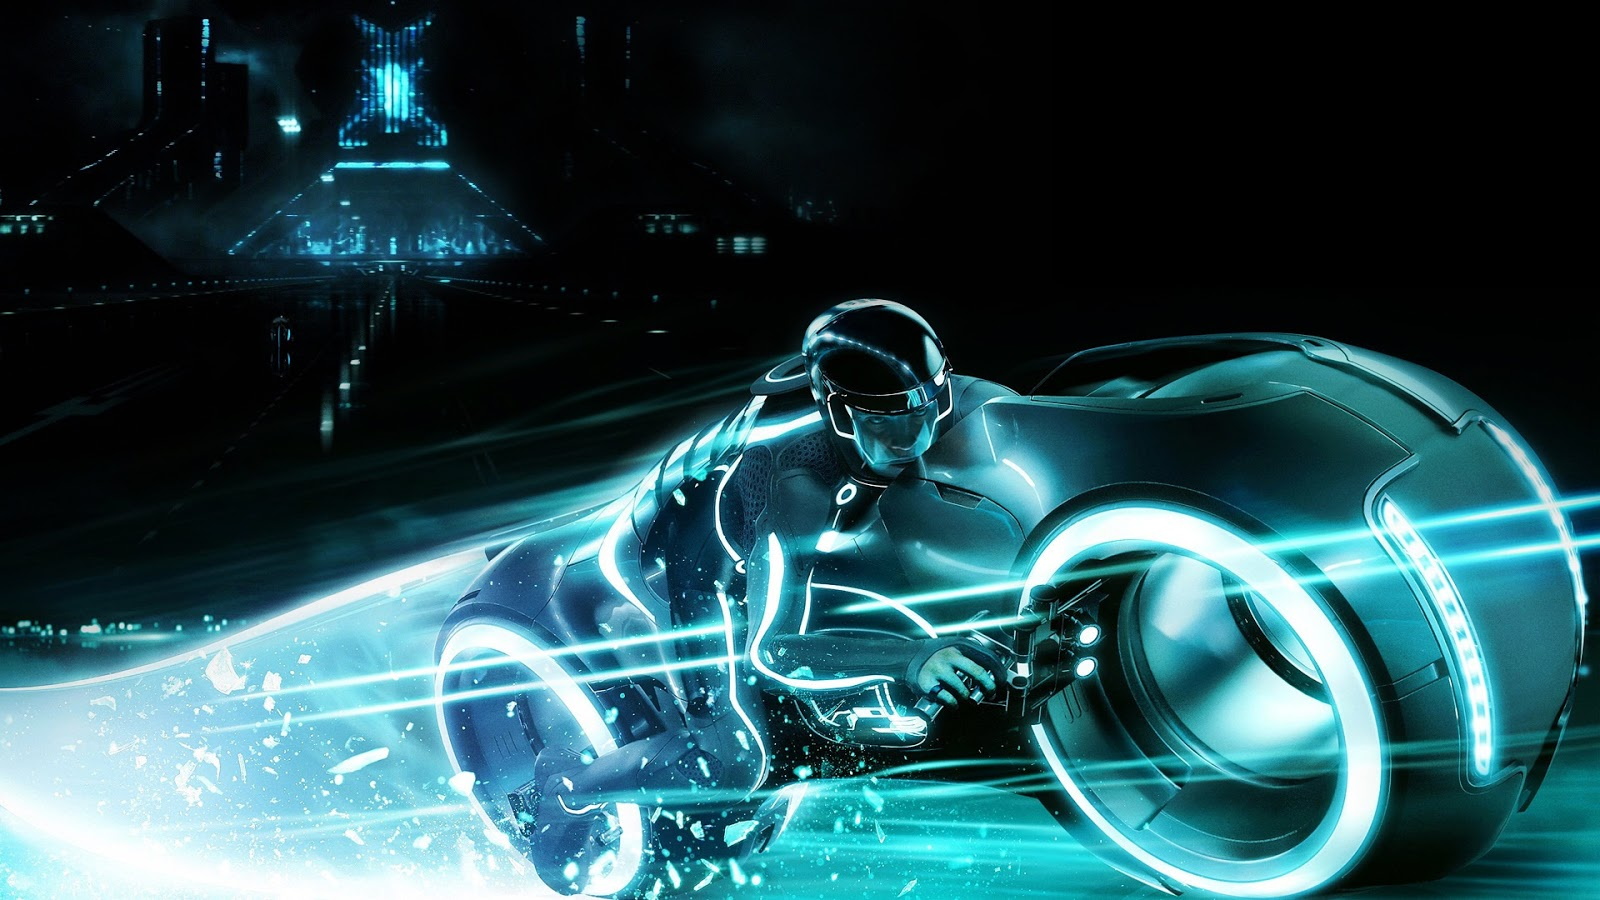 Tron 3 Is Officially No More | The Movie Bit